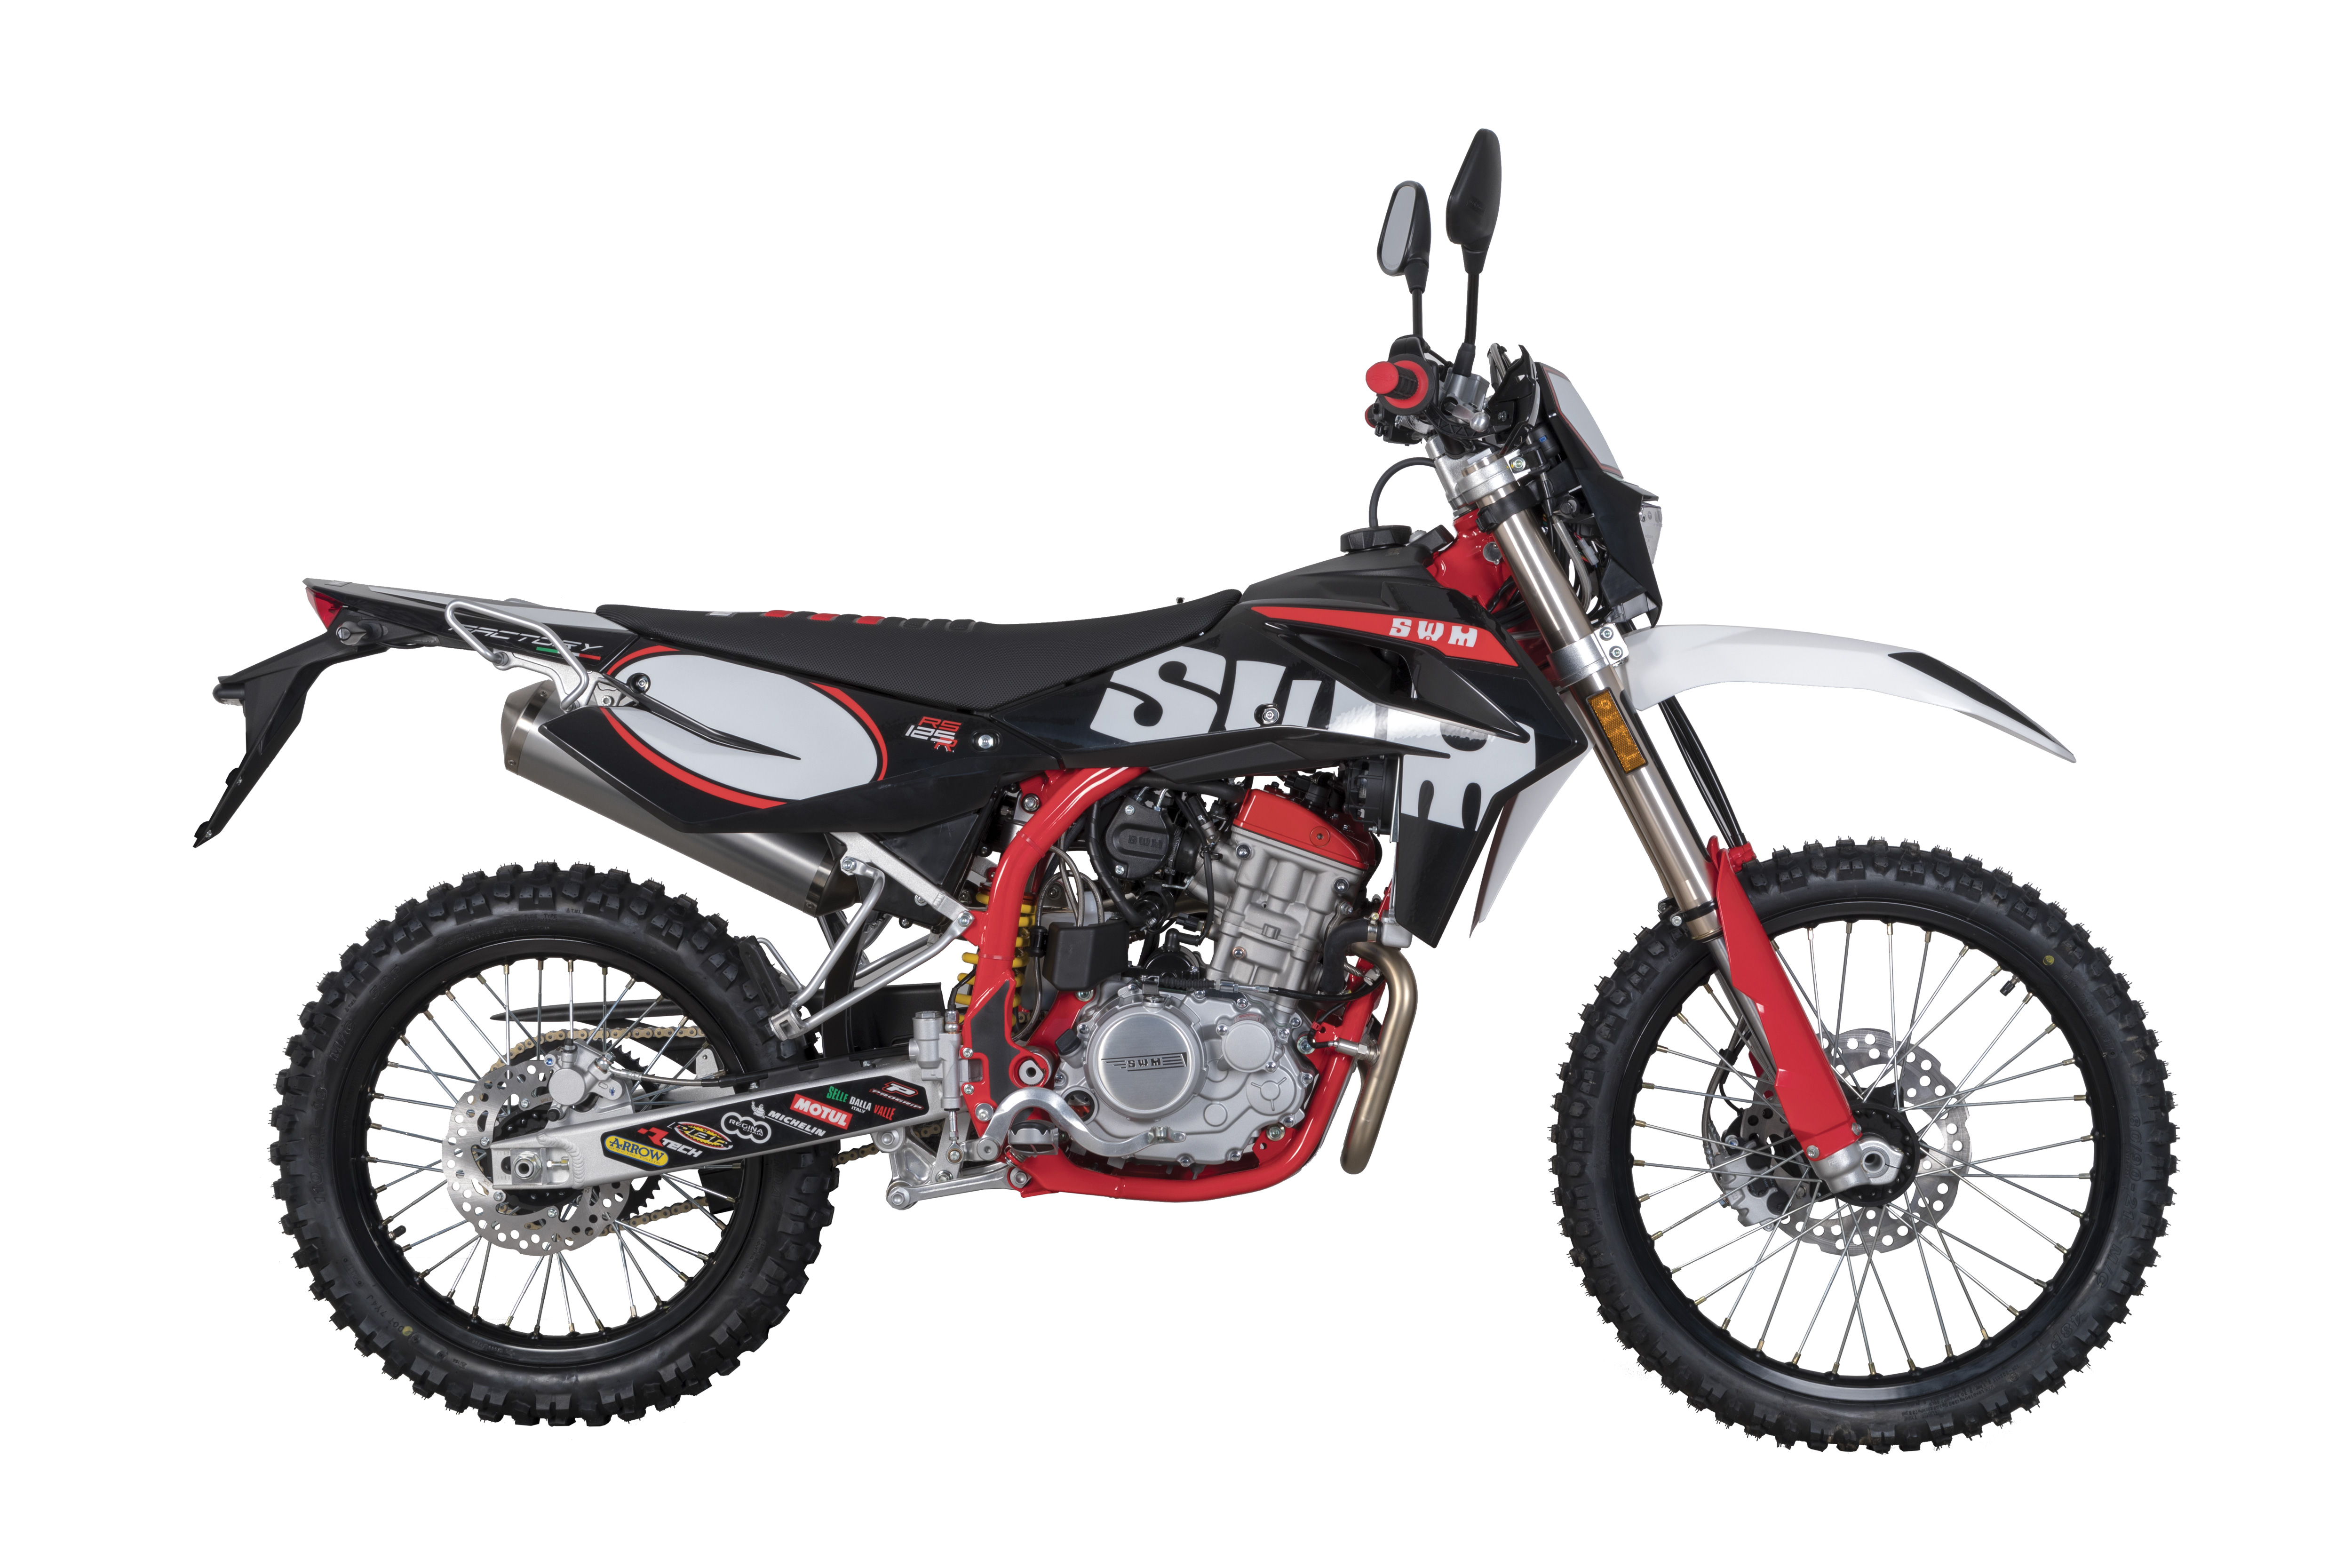 Rs 125 R Factory Swm Motorcycles